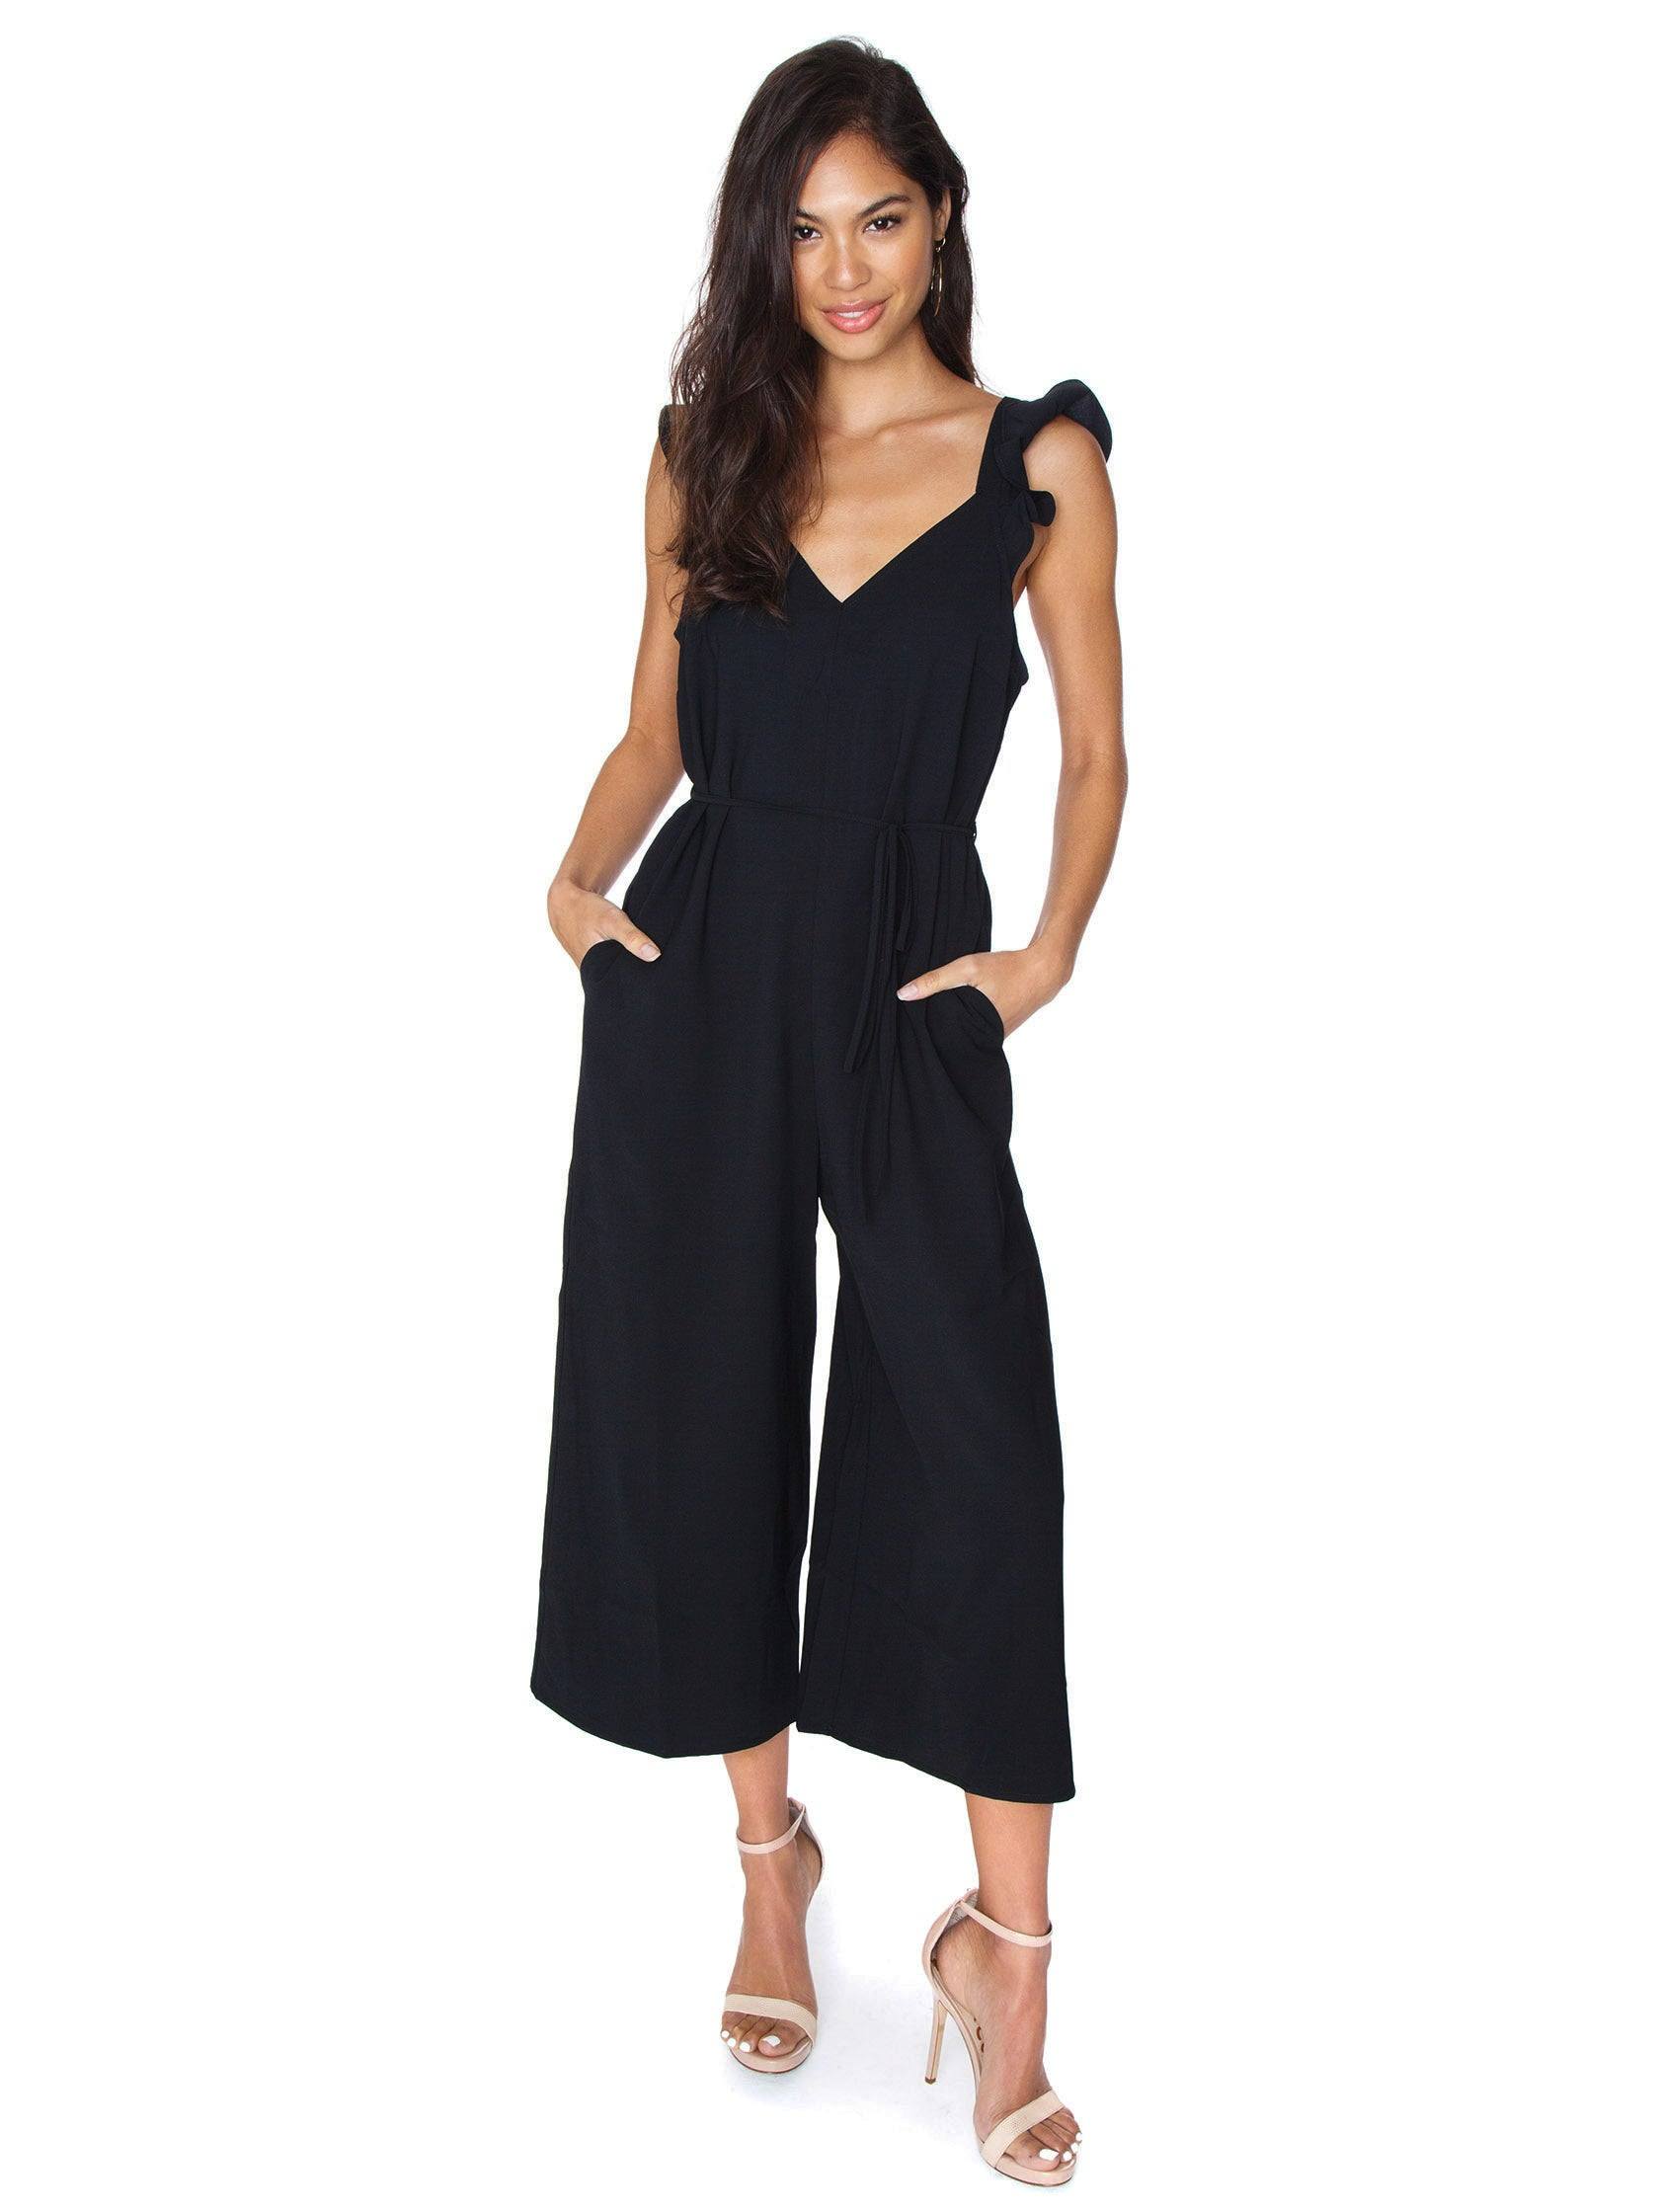 Girl outfit in a jumpsuit rental from Line & Dot called Leyla Jumpsuit